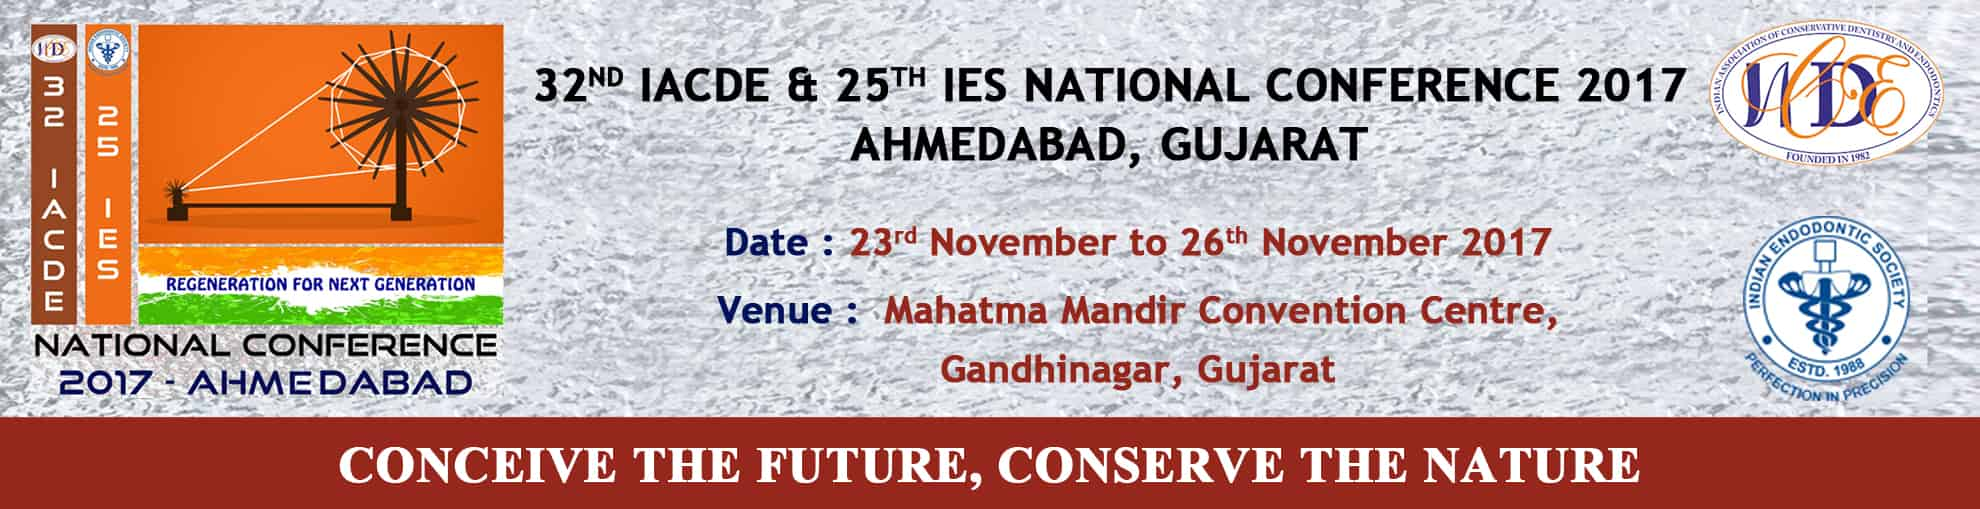 32nd IACDE & 25th IES National Conference 2017, Ahmedabad, Gujarat